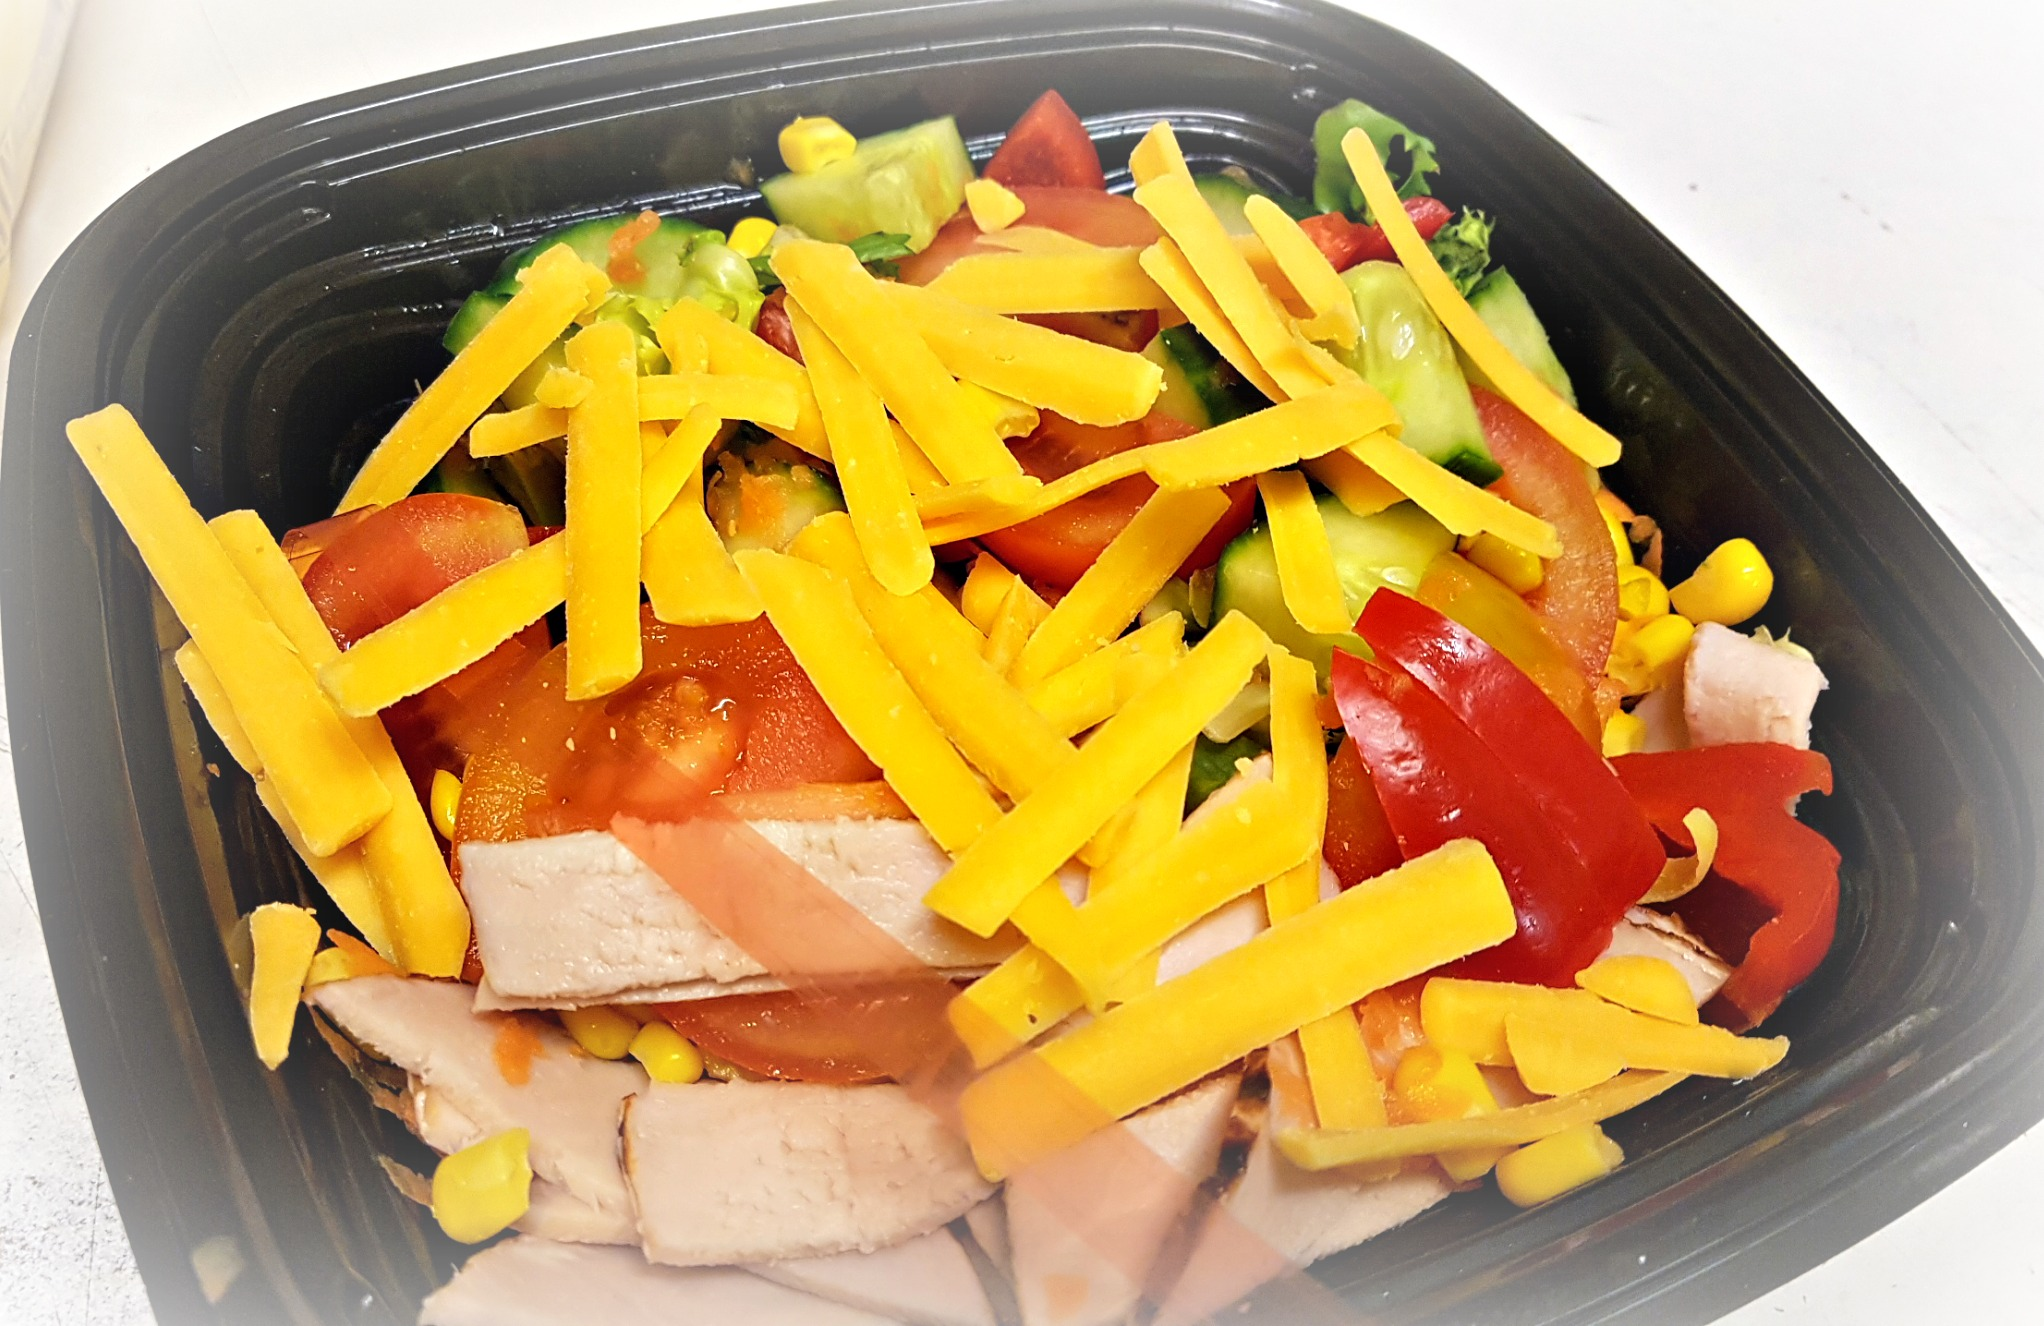 mixed salad in a black dish with cheese sprinkled on top